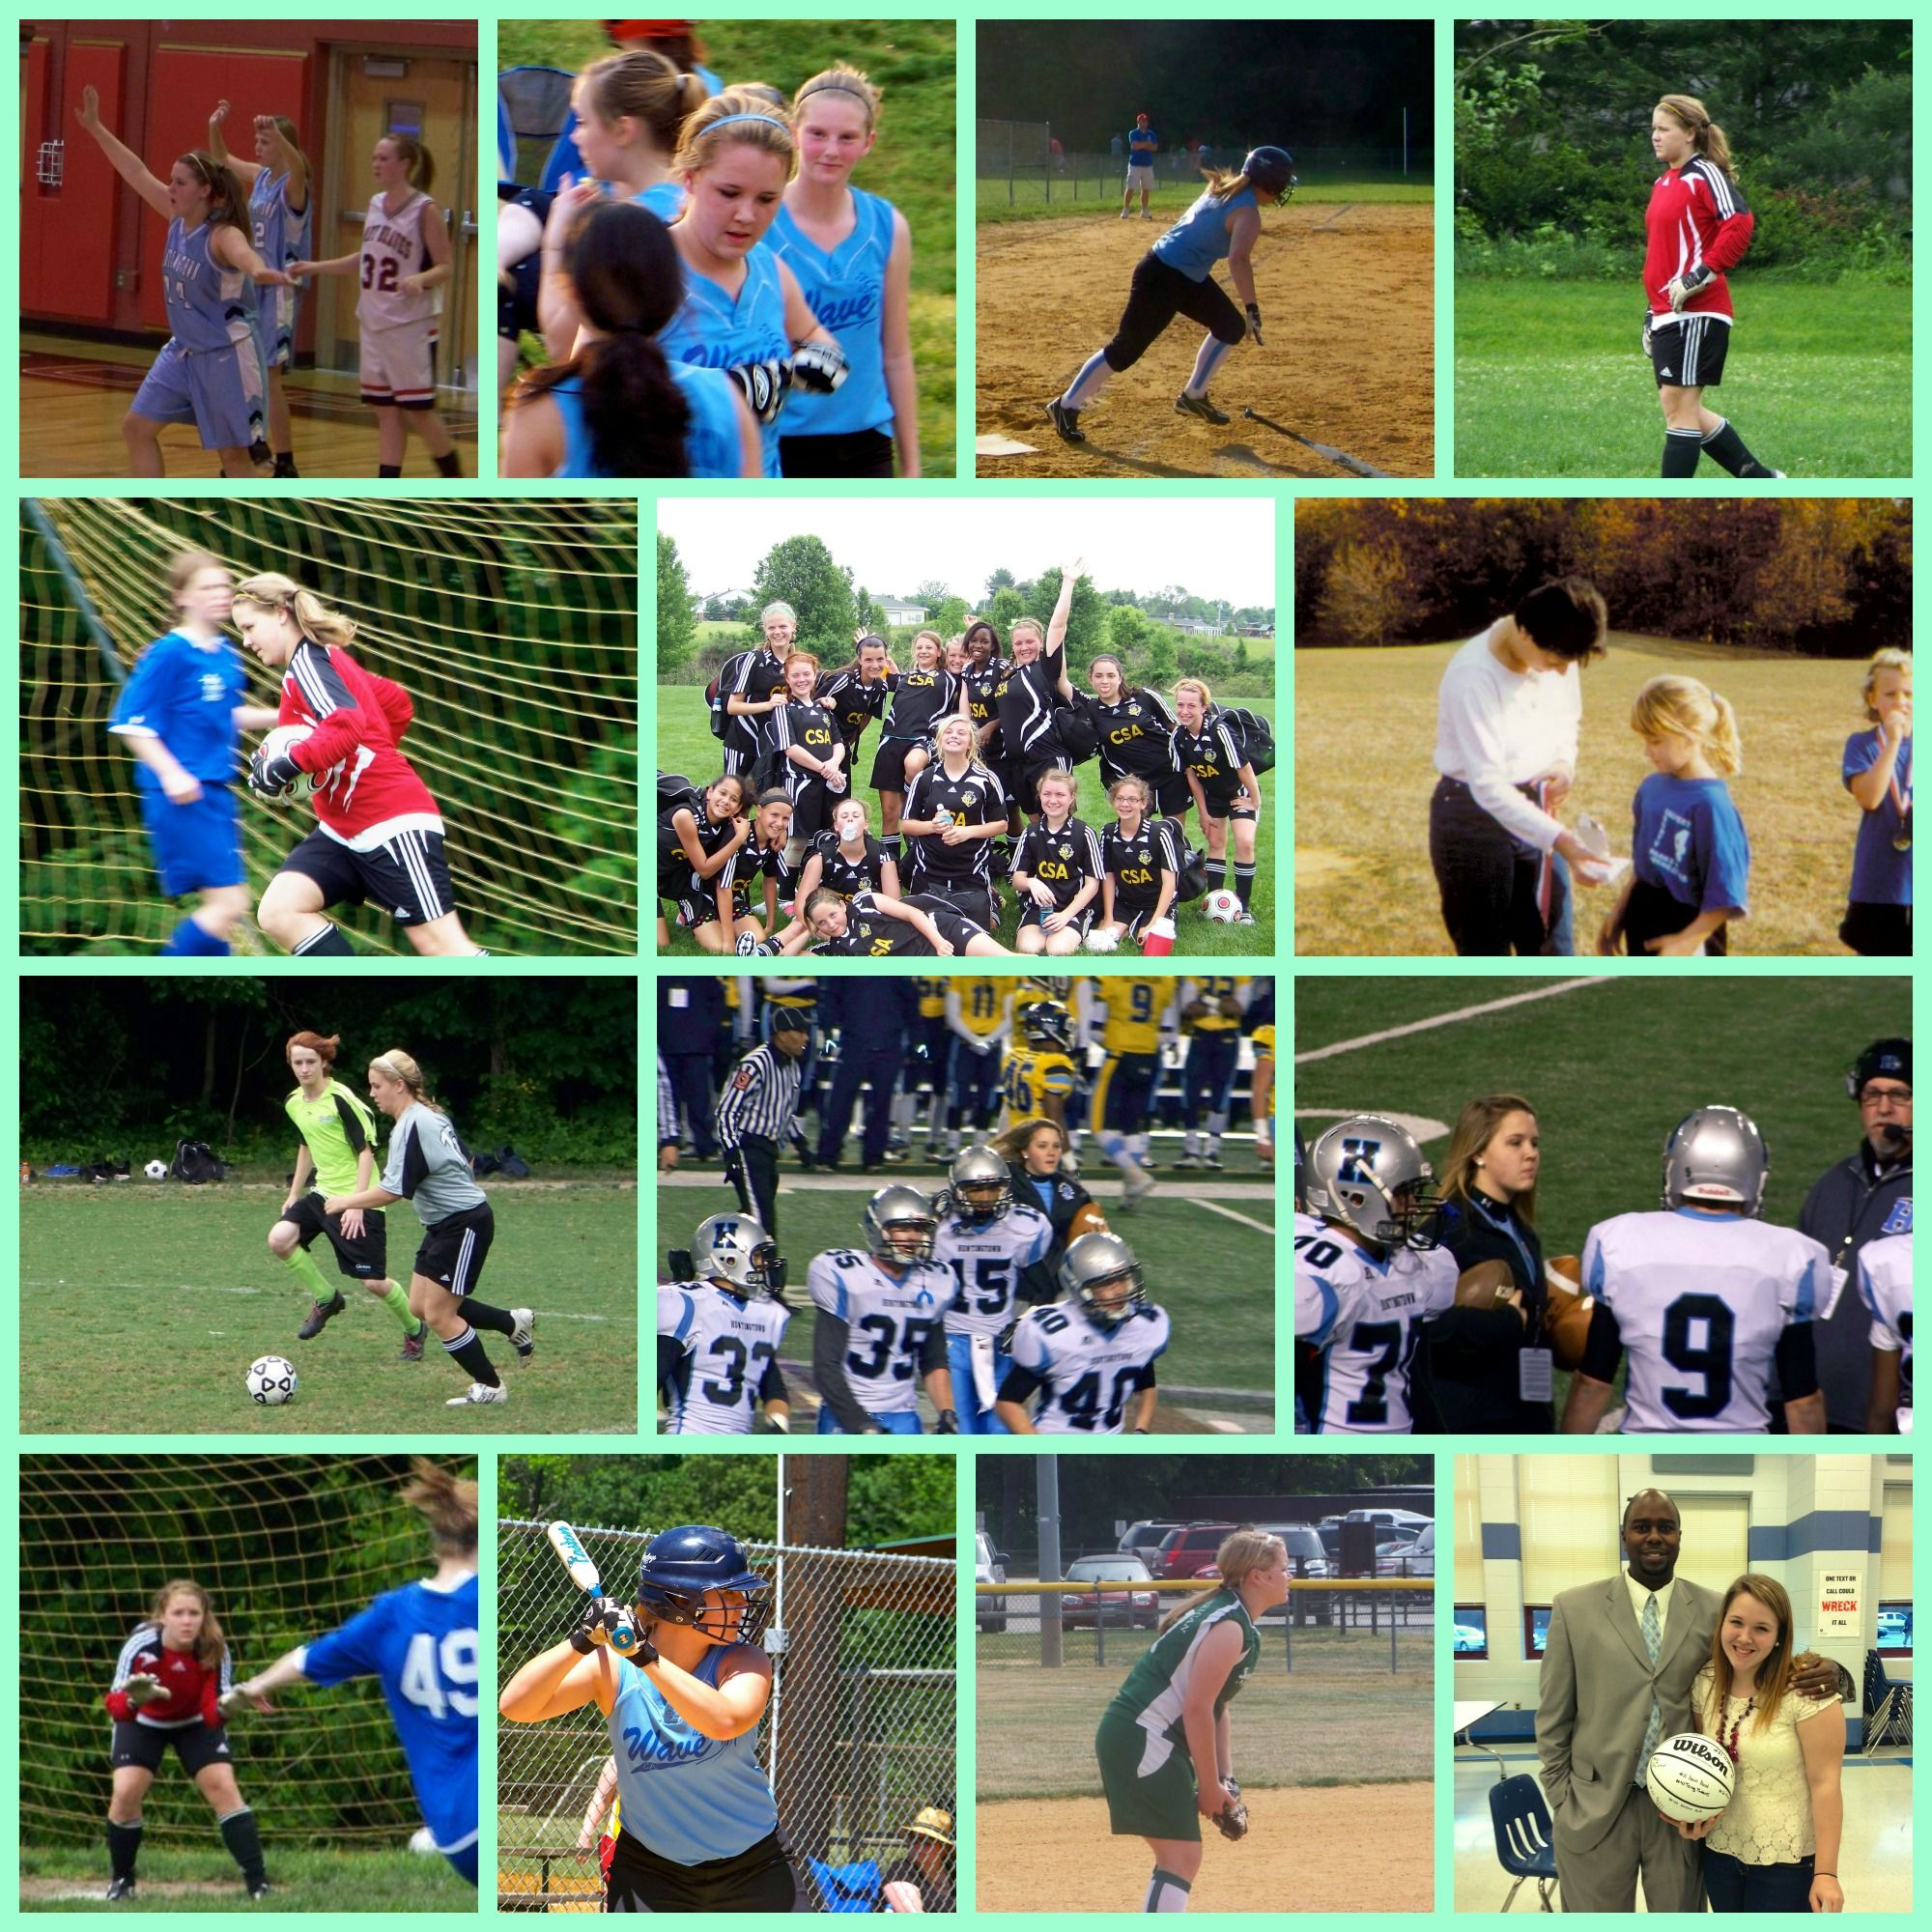 Day 98: #101gratitude I am very grateful for the great sports opportunities offered in this area. I've been to thousands of practices and hundreds of games in 4 different sports for my kid and have enjoyed all of them. Team sports have helped my girl become the young adult she is today and I'm especially grateful to all the people who give their time for these kids.